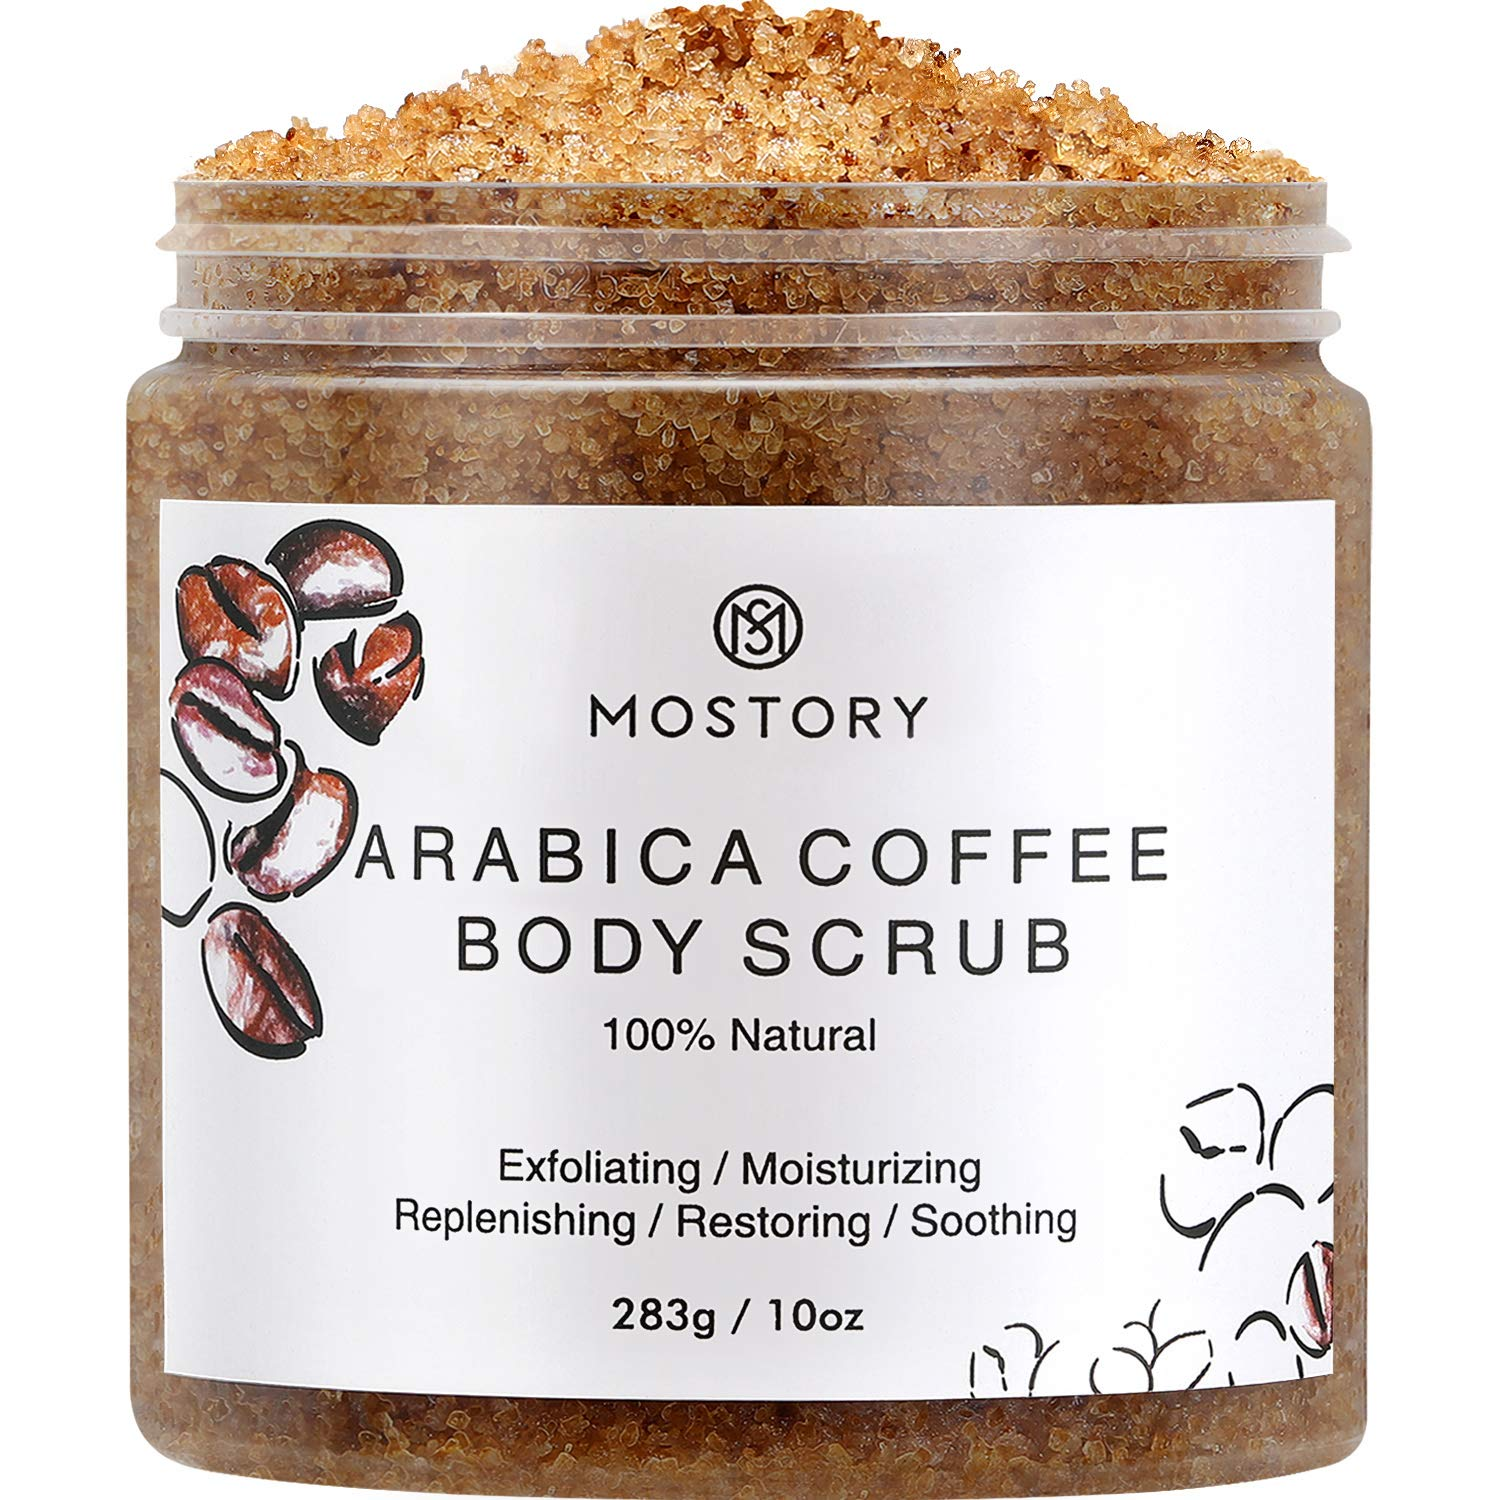 Mostory Dead Sea Salt and Coffee Body Scrub